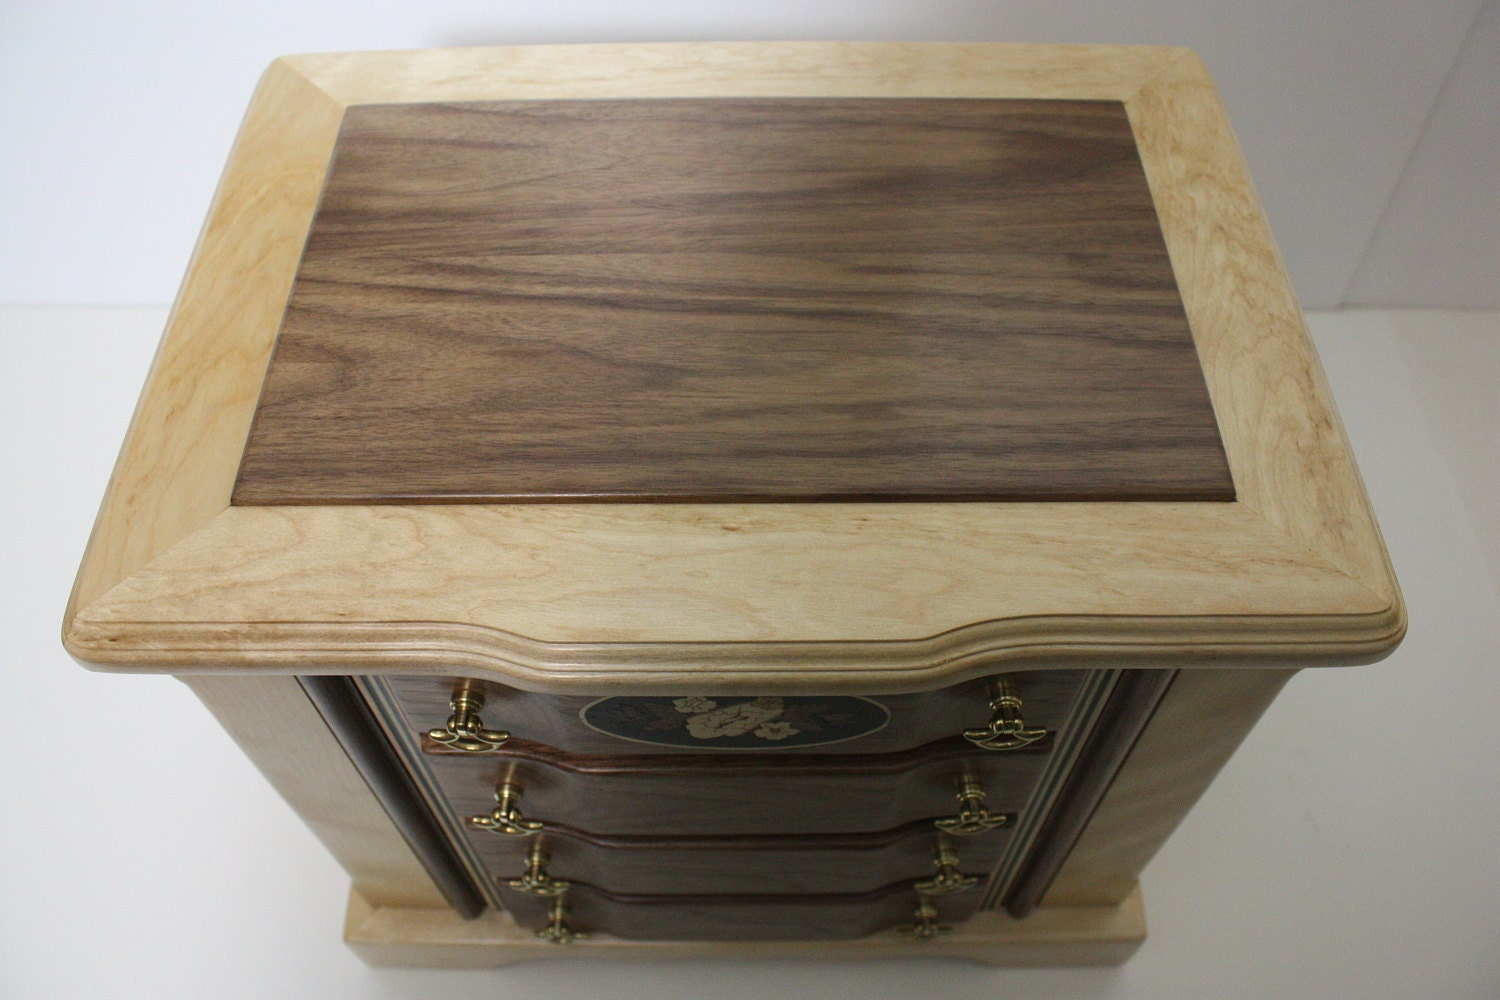 Tall Jewelry Box with Drawers For Sale